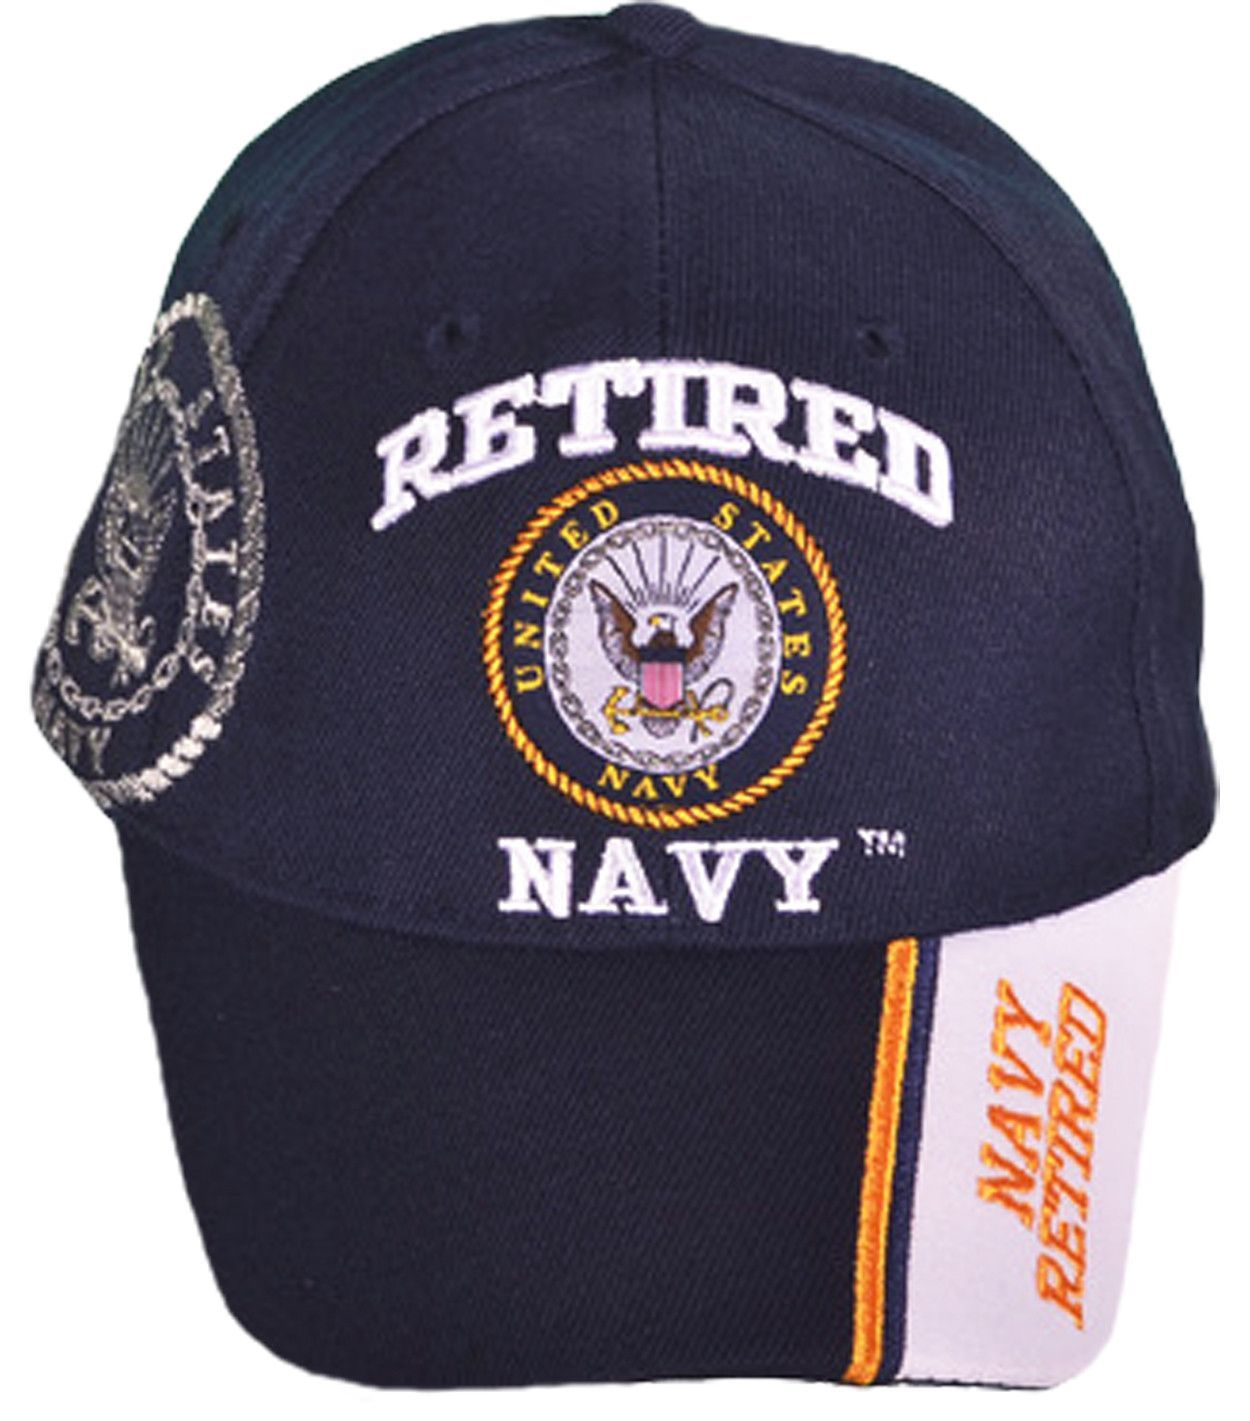 7c4d19156a4 US Retired Navy Hat Blue and White Baseball Cap Military Logo ...